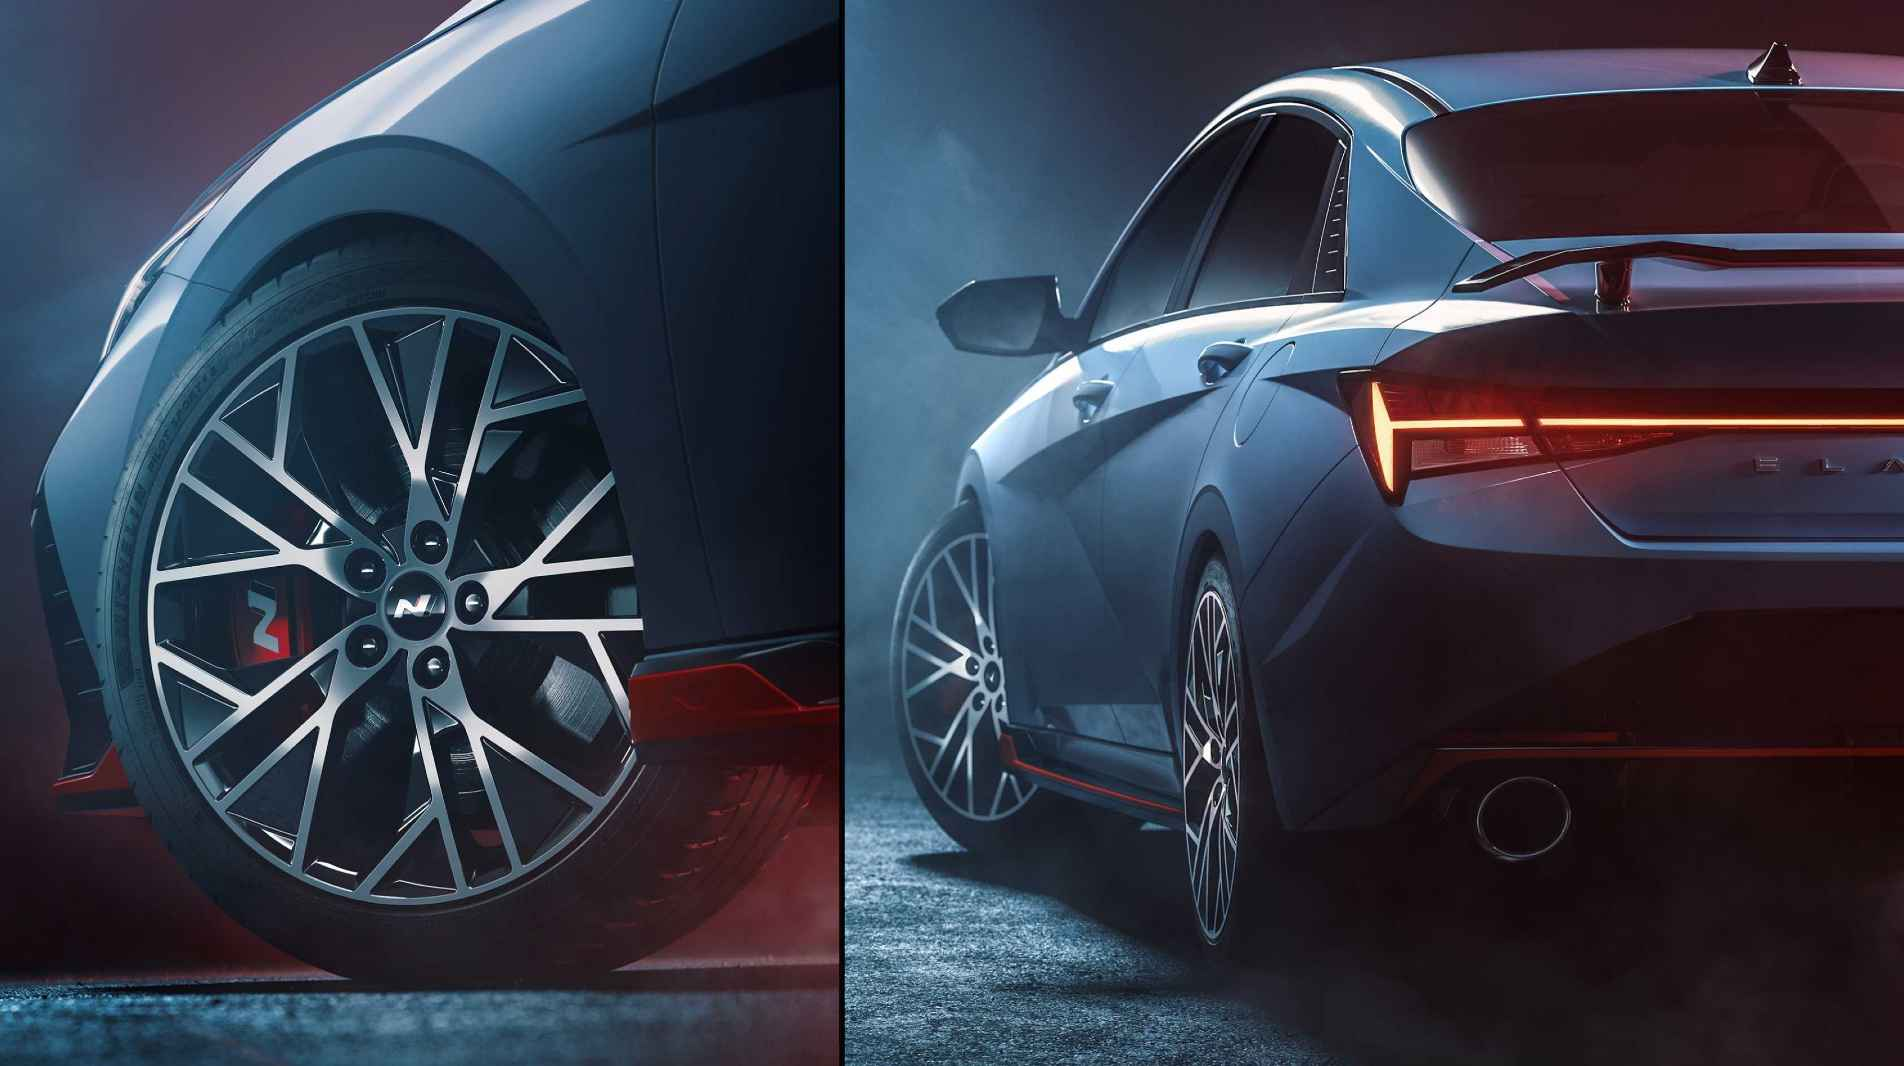 Larger wheels and a full-size rear spoiler will be standard on the Hyundai Elantra N. Image: Hyundai